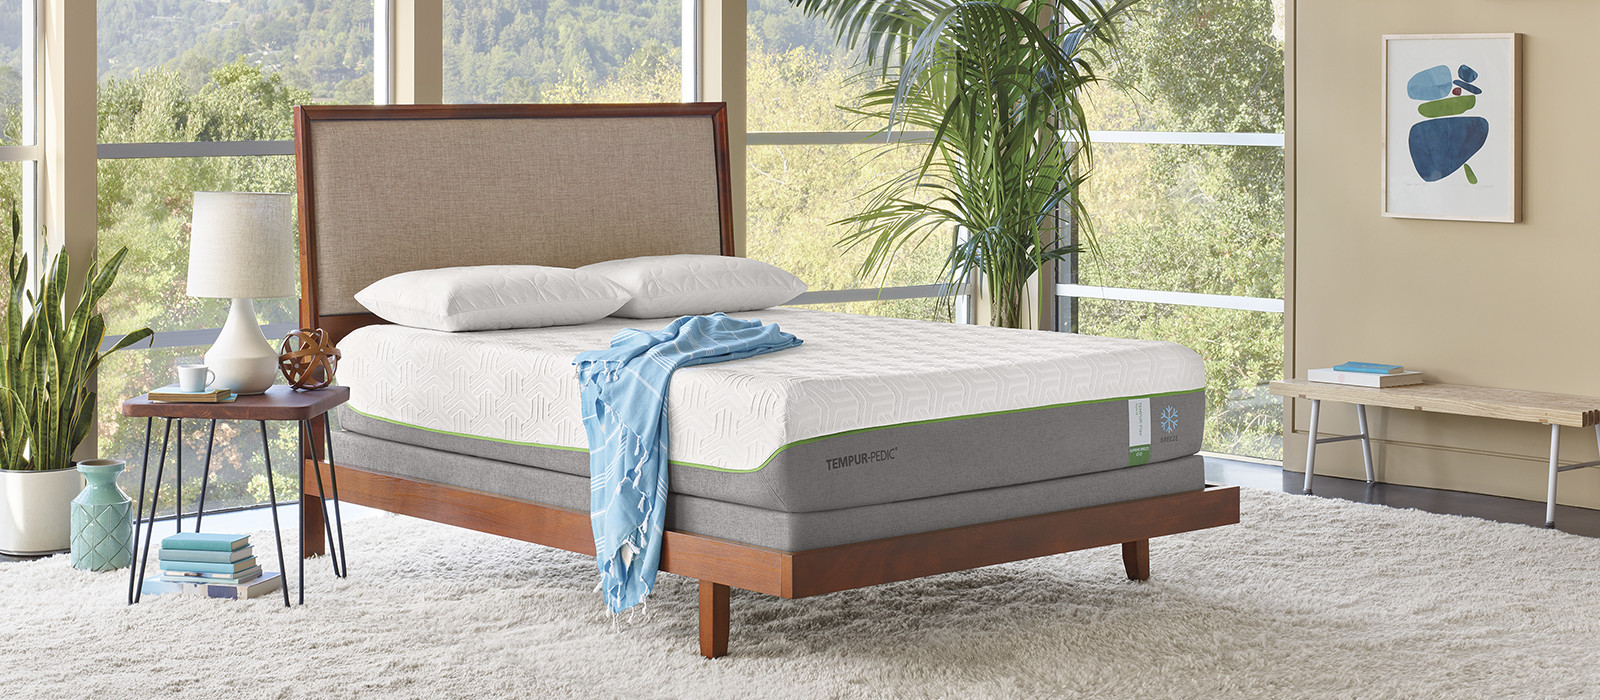 New Tempur Flex 174 Supreme Breeze Tempur Pedic